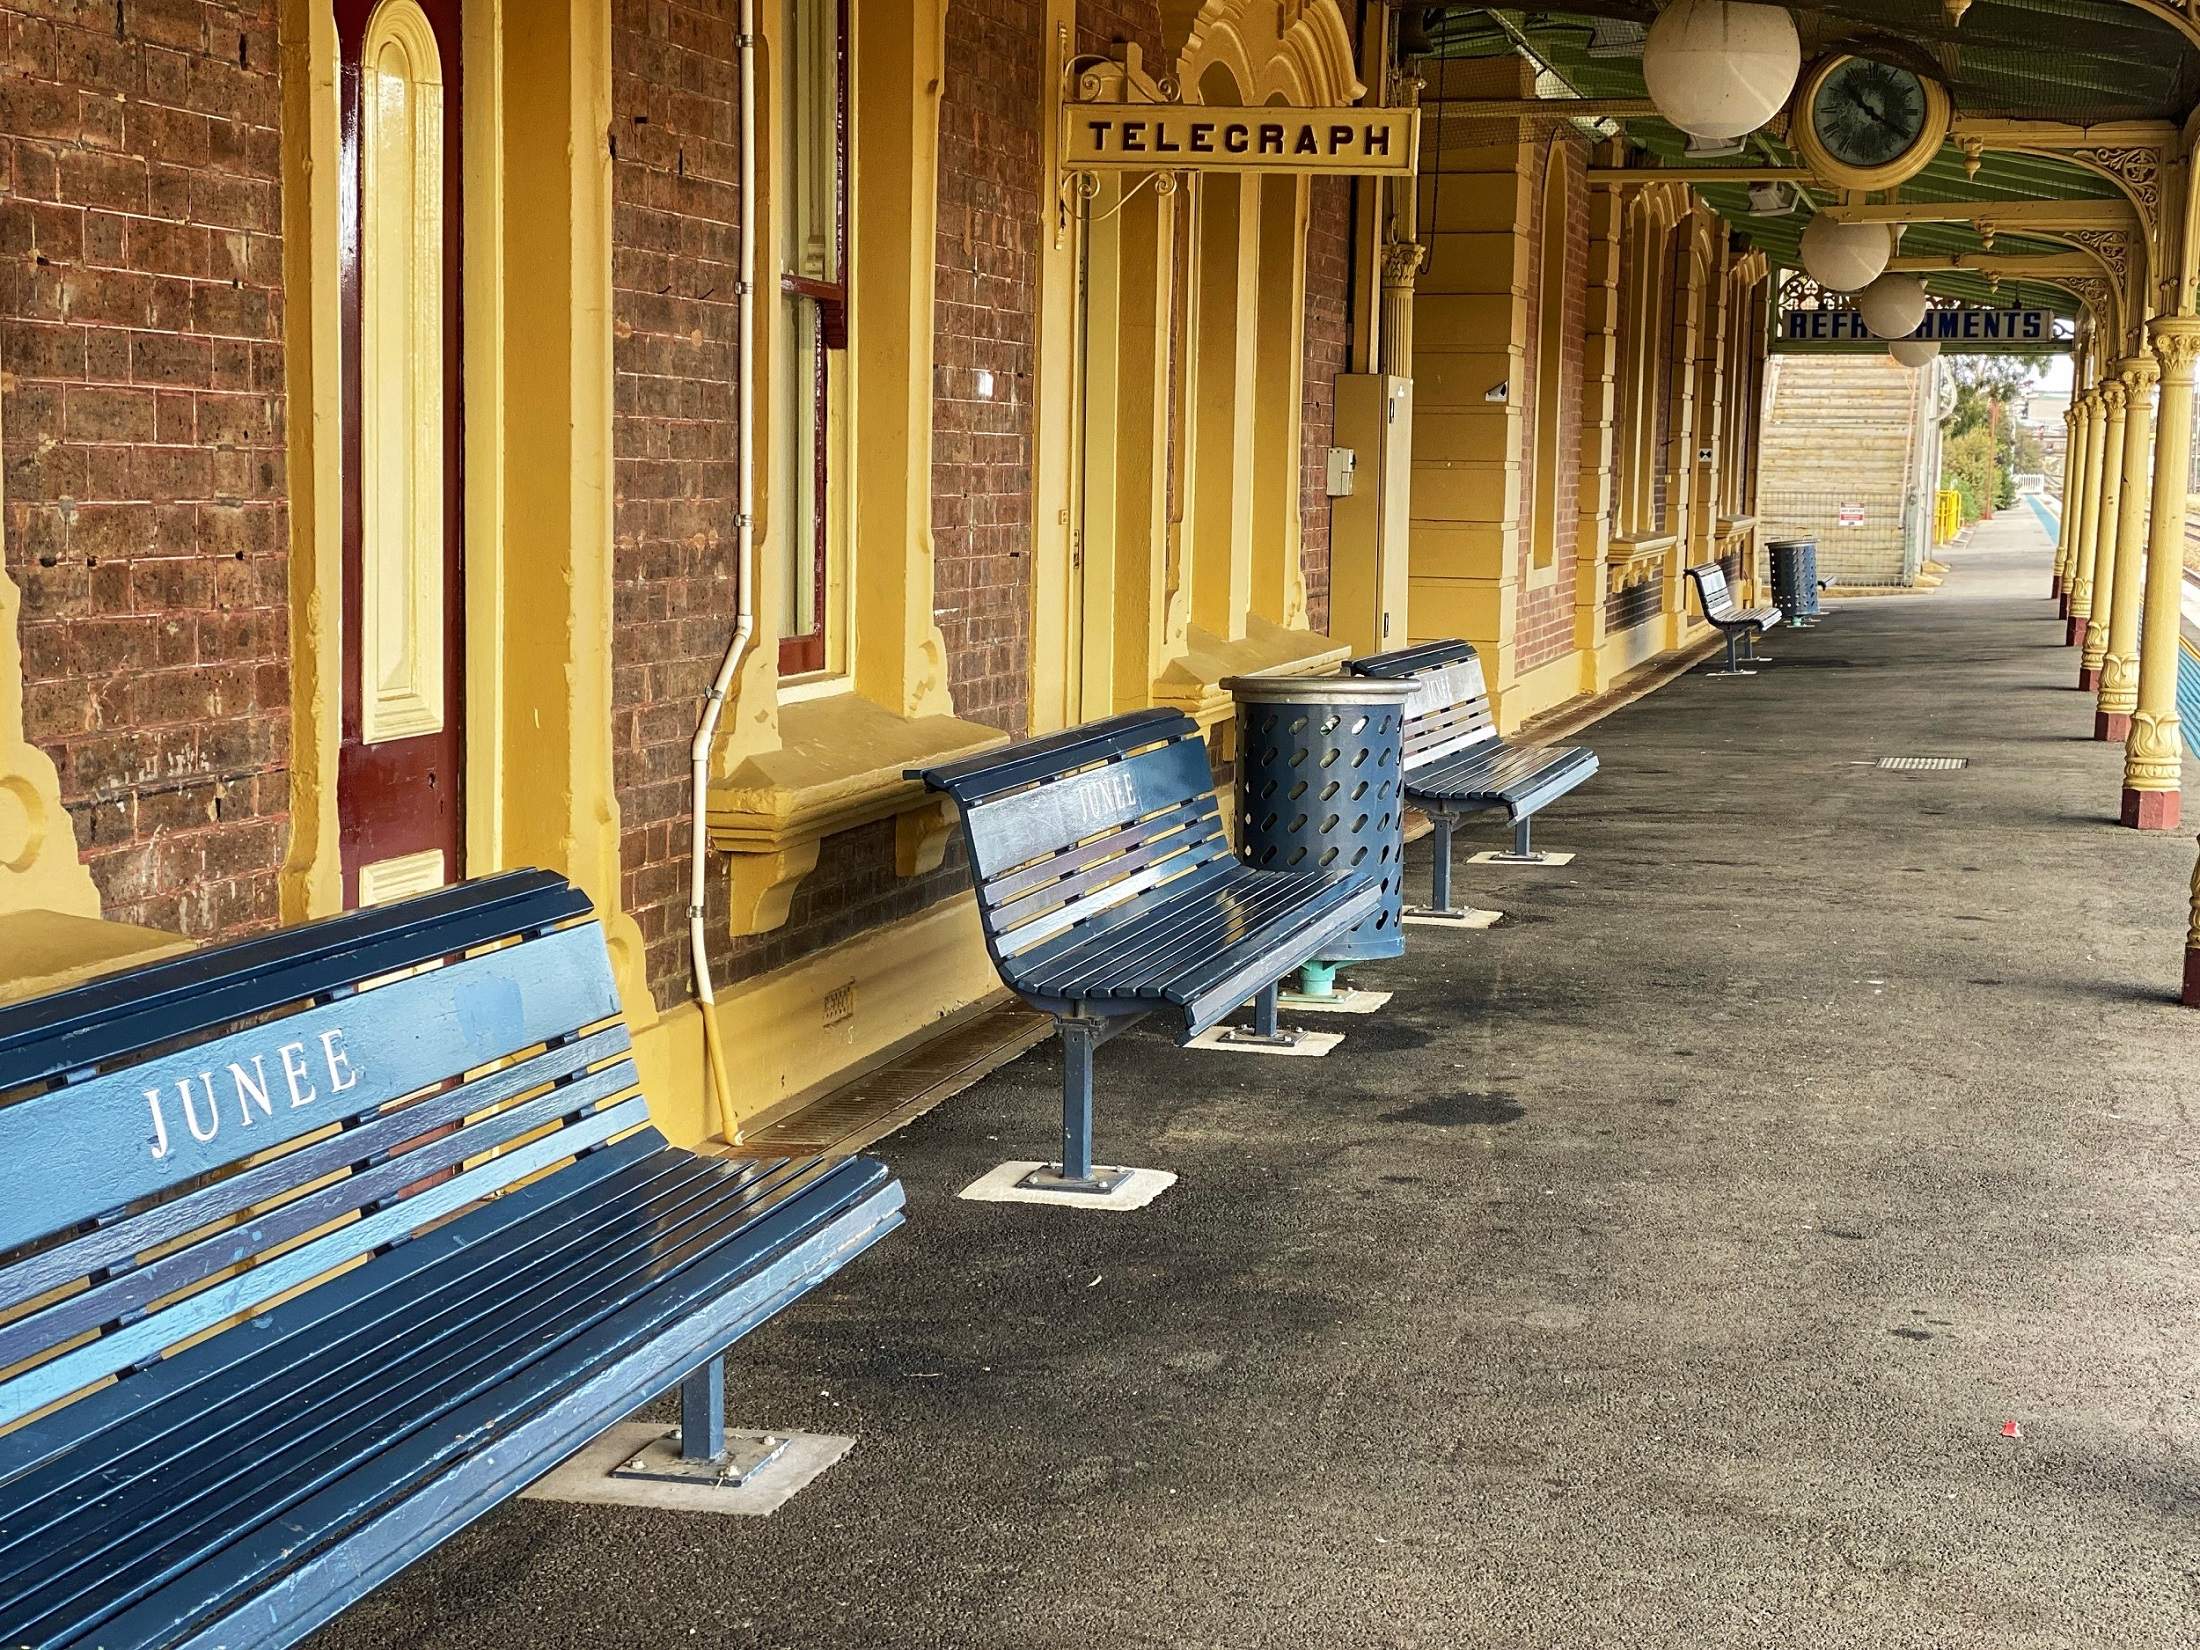 Picture of the Junee rail station platform, empty blue benches can be seen in the foreground with a 'telegraph' sign hanging from the roof.